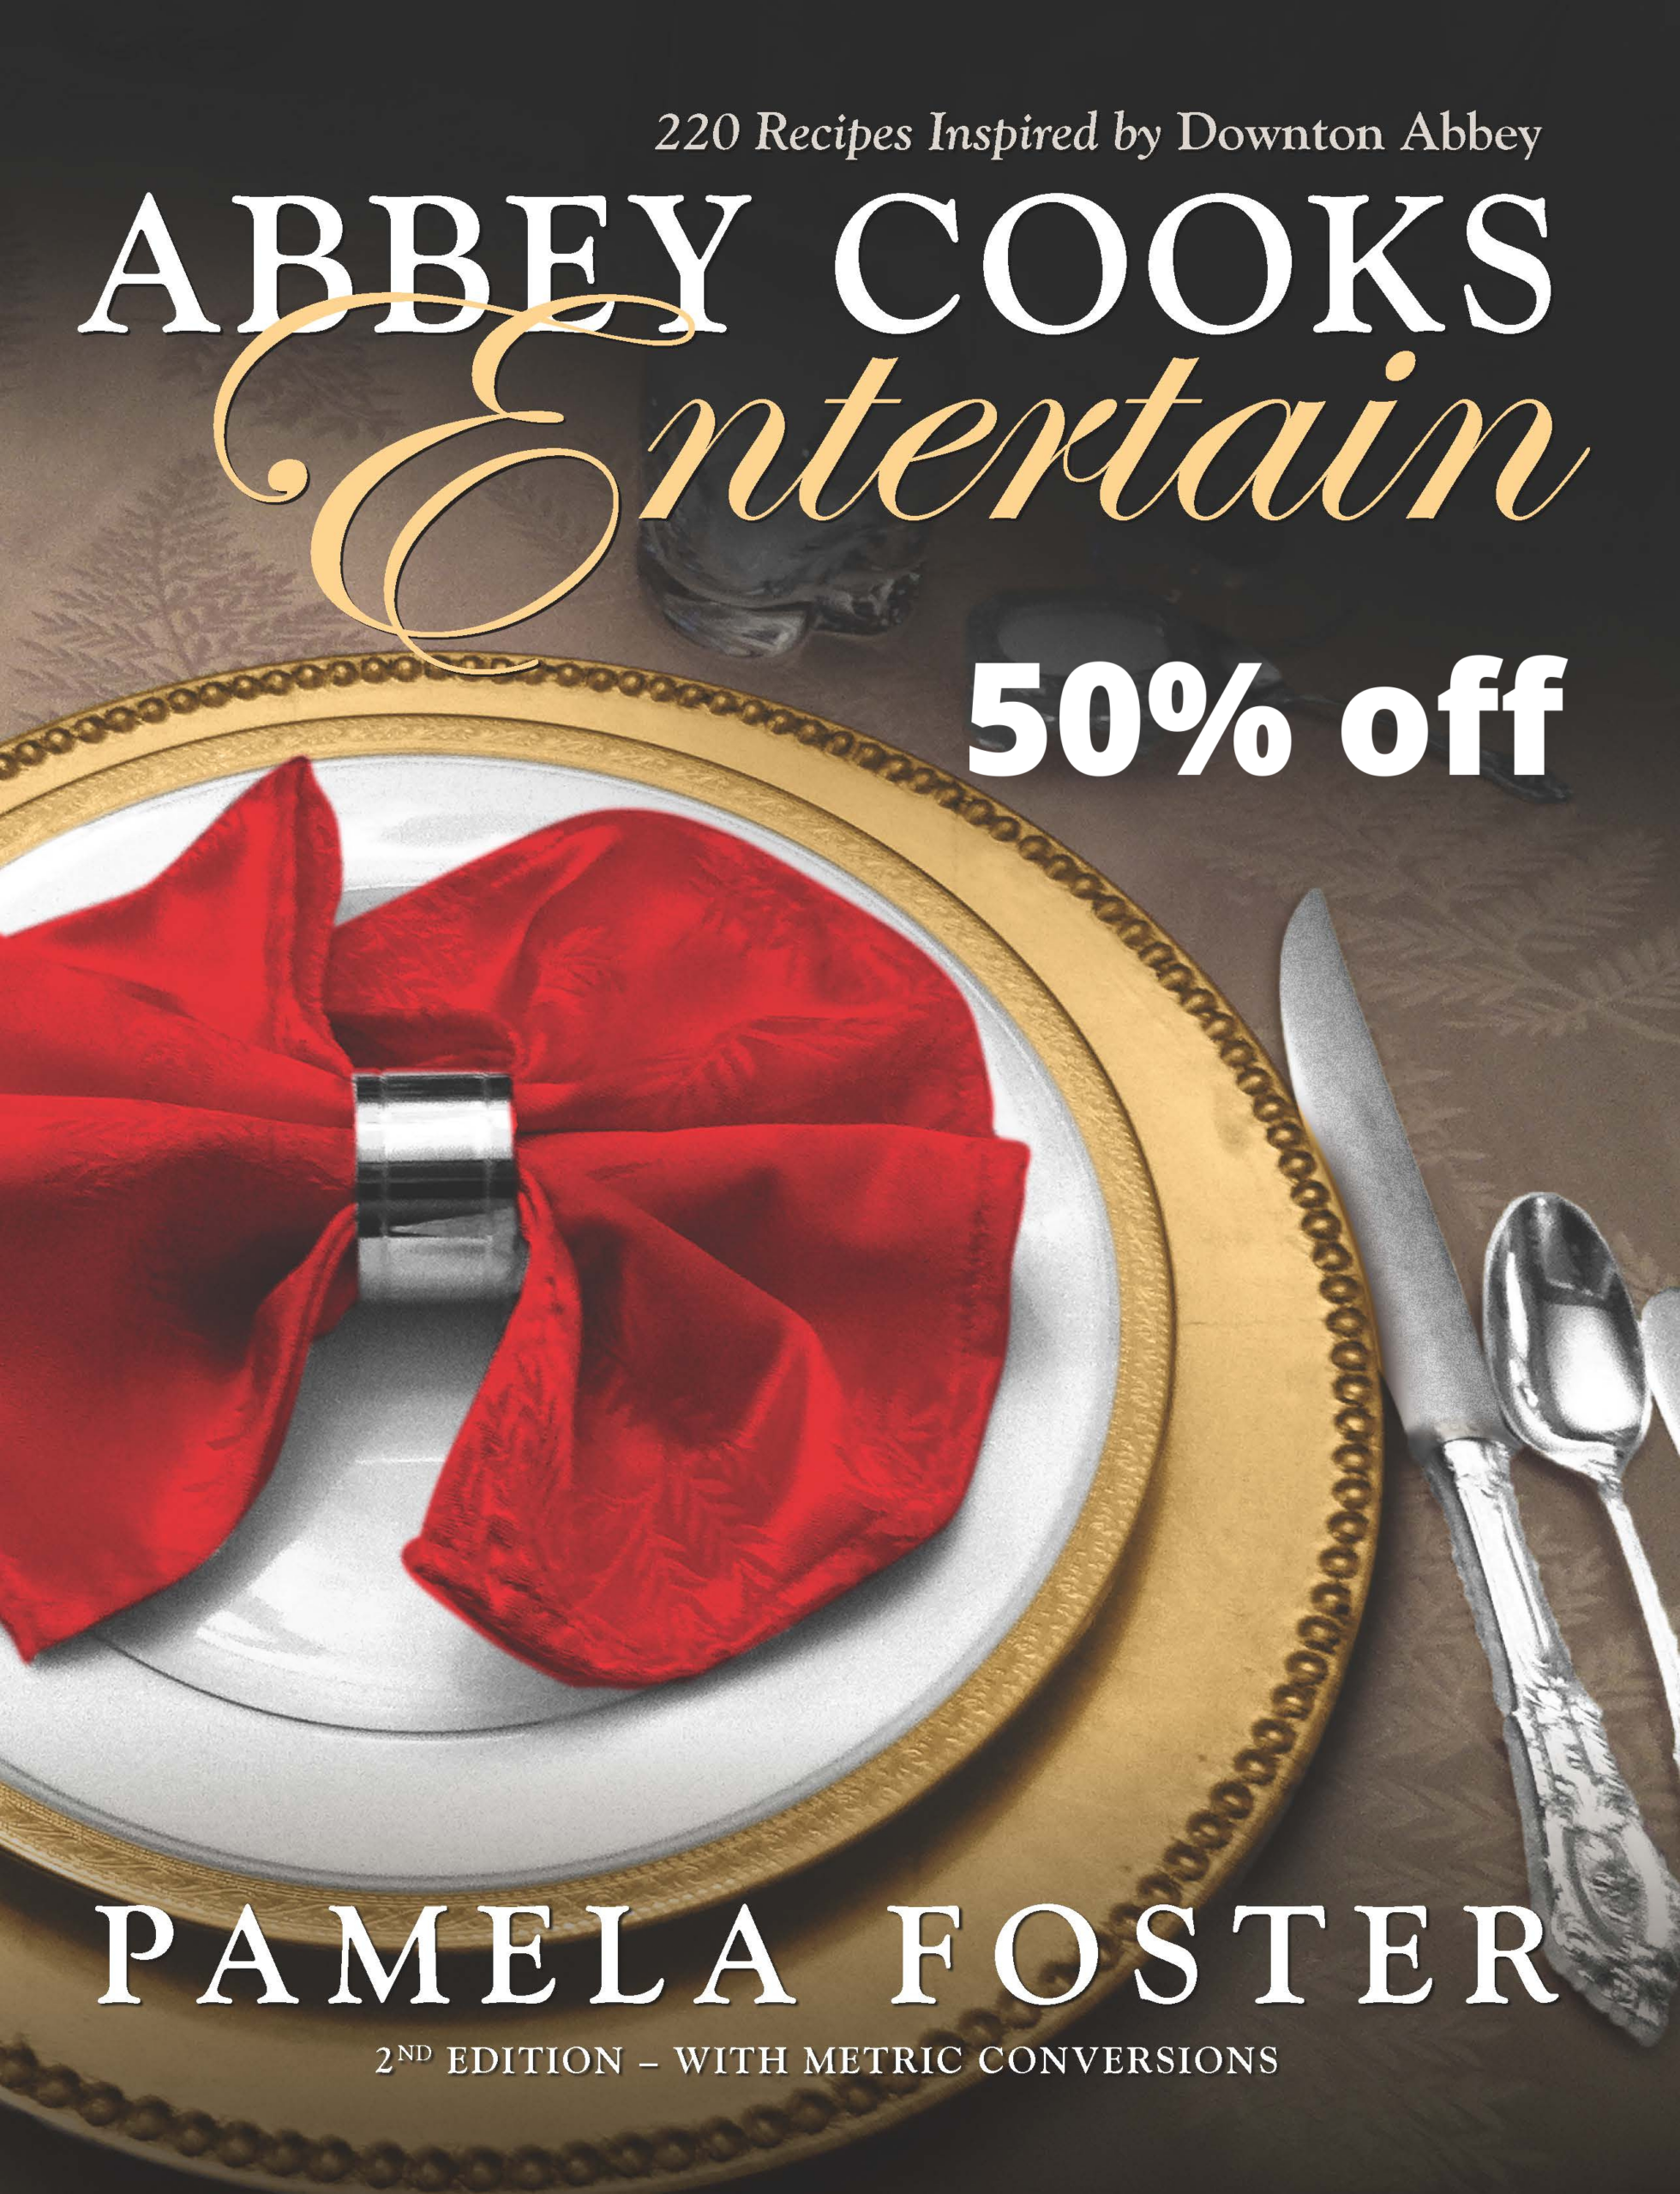 Download my signed ebooks, now 50% off